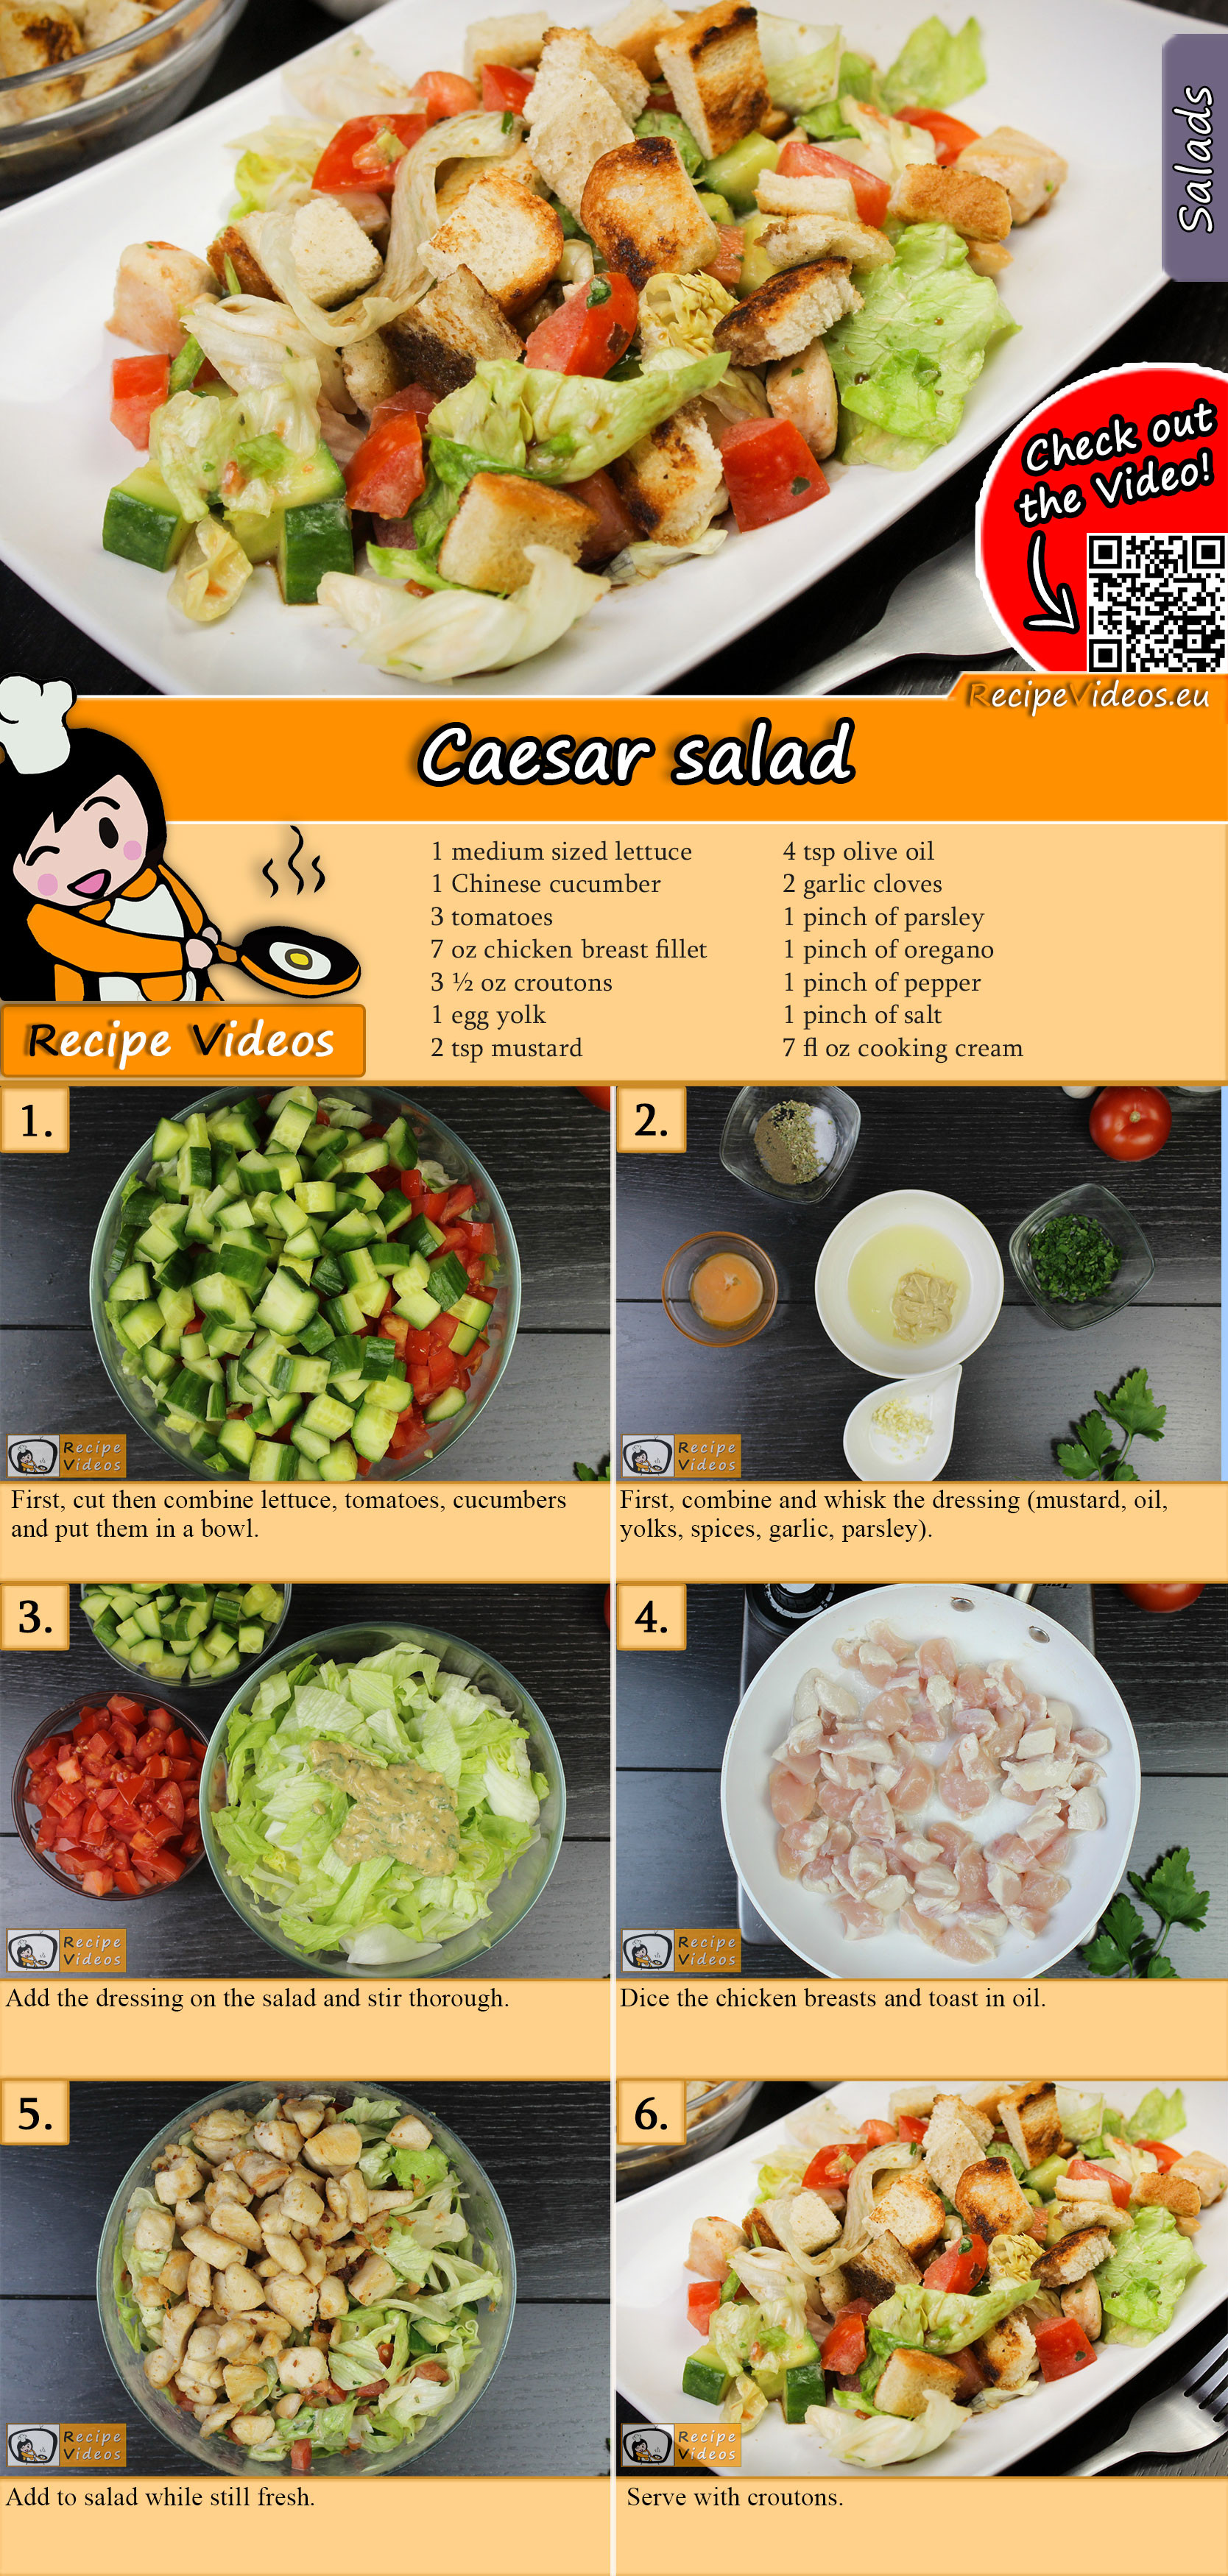 Caesar salad recipe with video